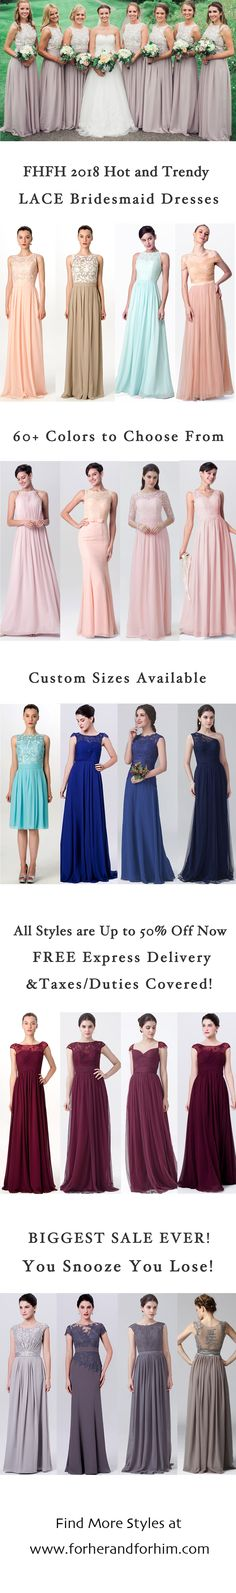 FHFH Lace bridesmaid dresses! All styles are on Crazy Spring Sale now, don't miss it!